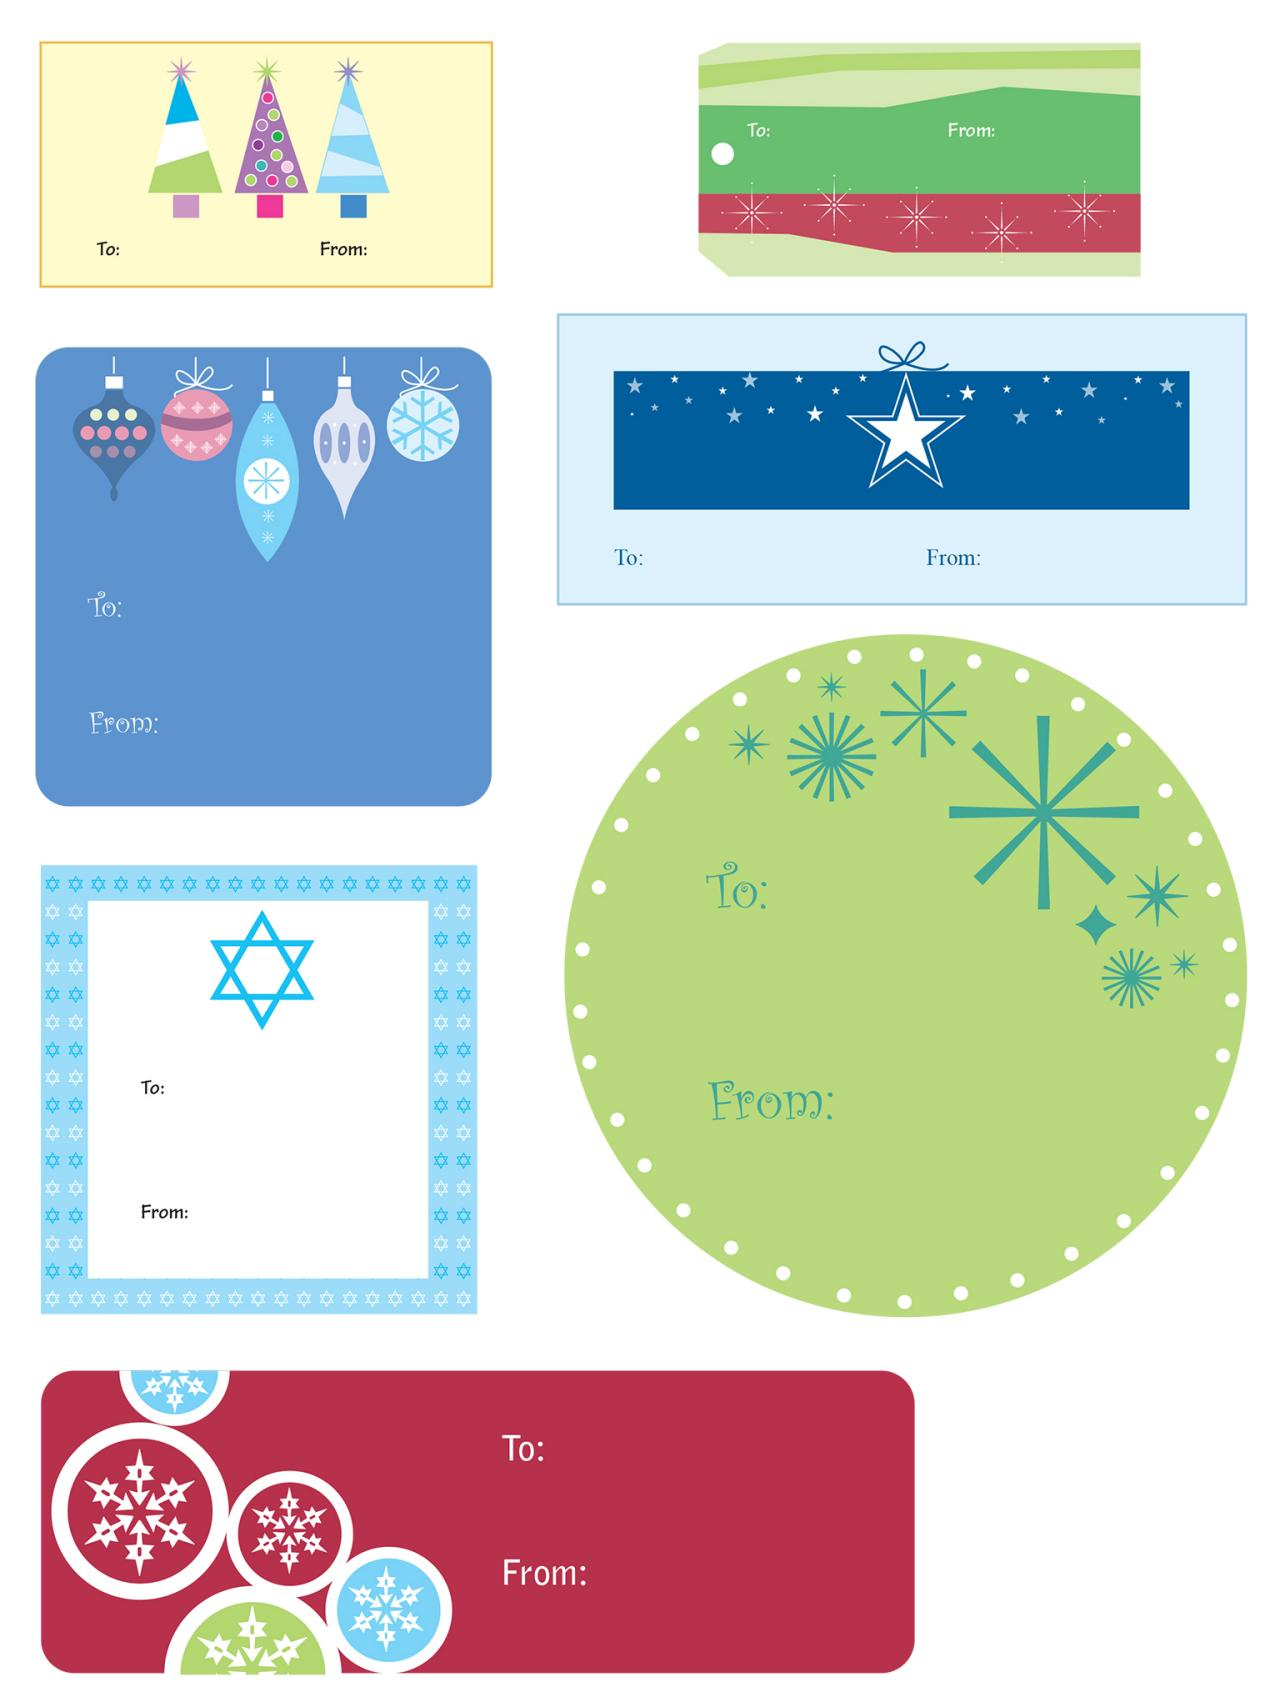 Free Christmas Templates Printable Gift Tags Cards Crafts More - Cupcake name tag template